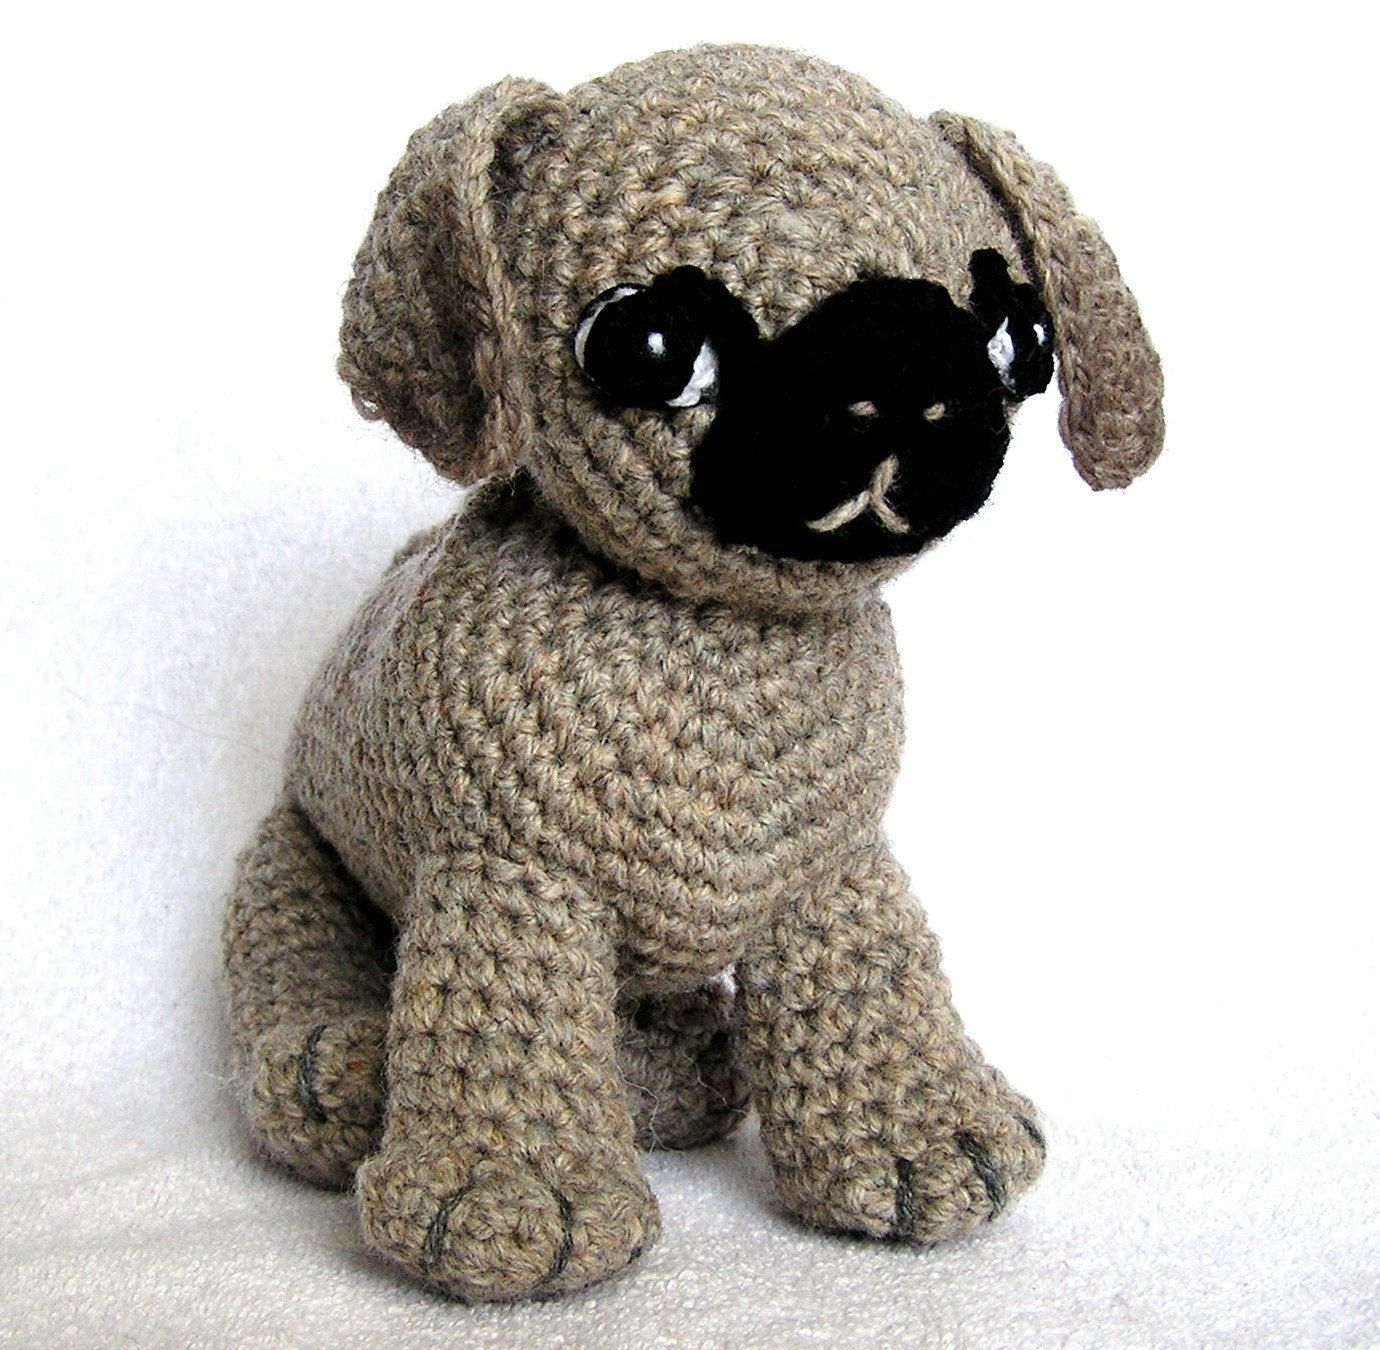 Crochet pug | Puggies | Pinterest | Crochet, Amigurumi patterns and ...